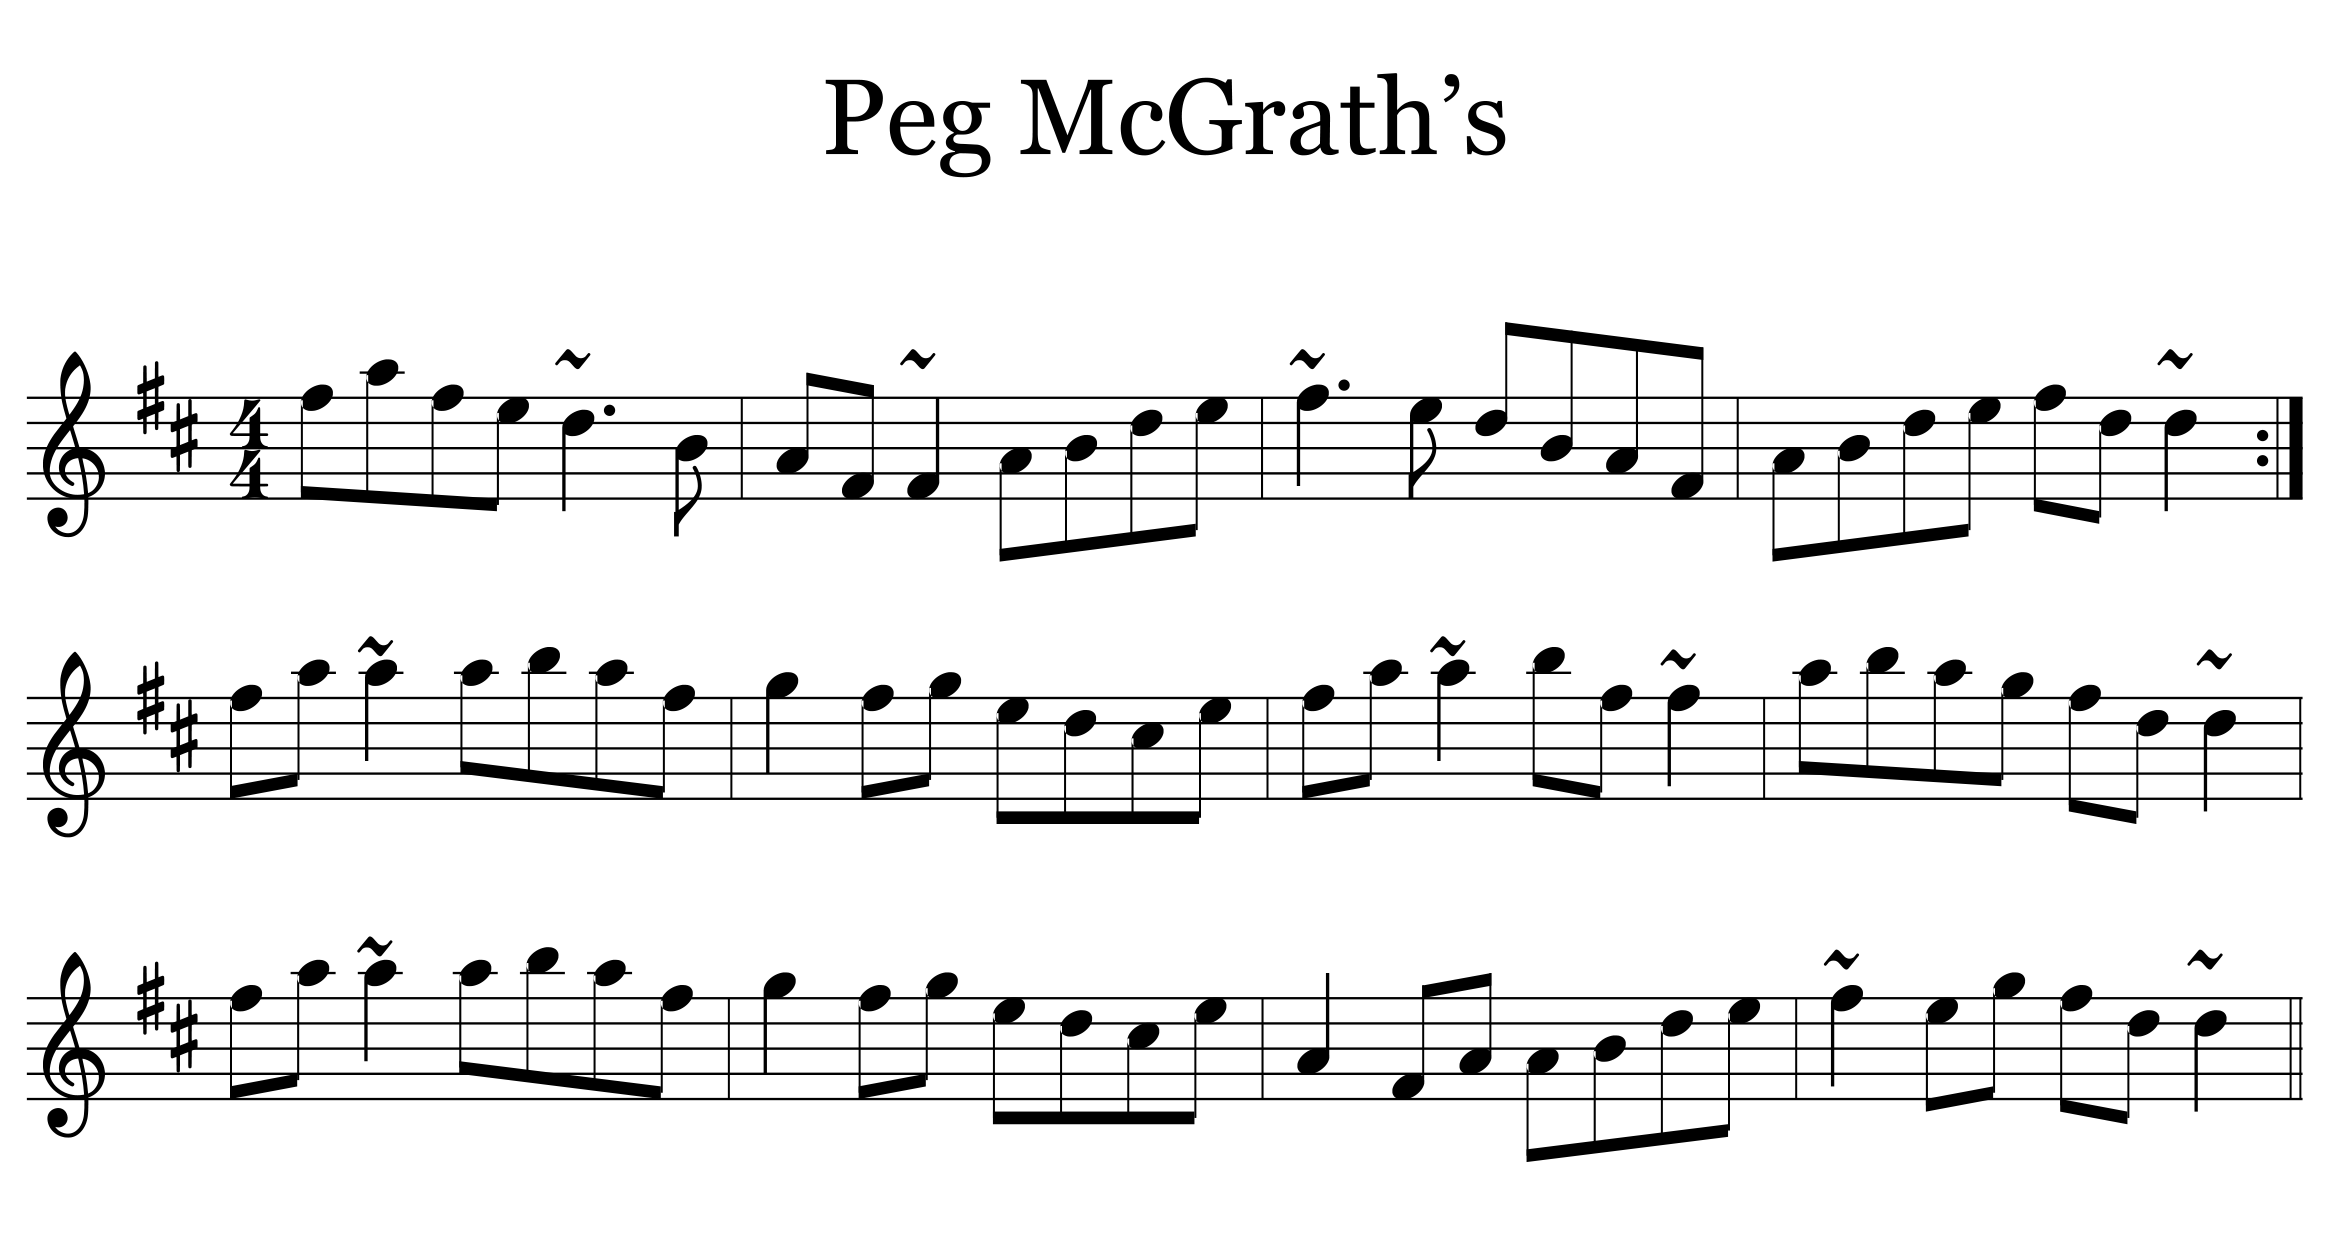 Peg McGrath's Reel